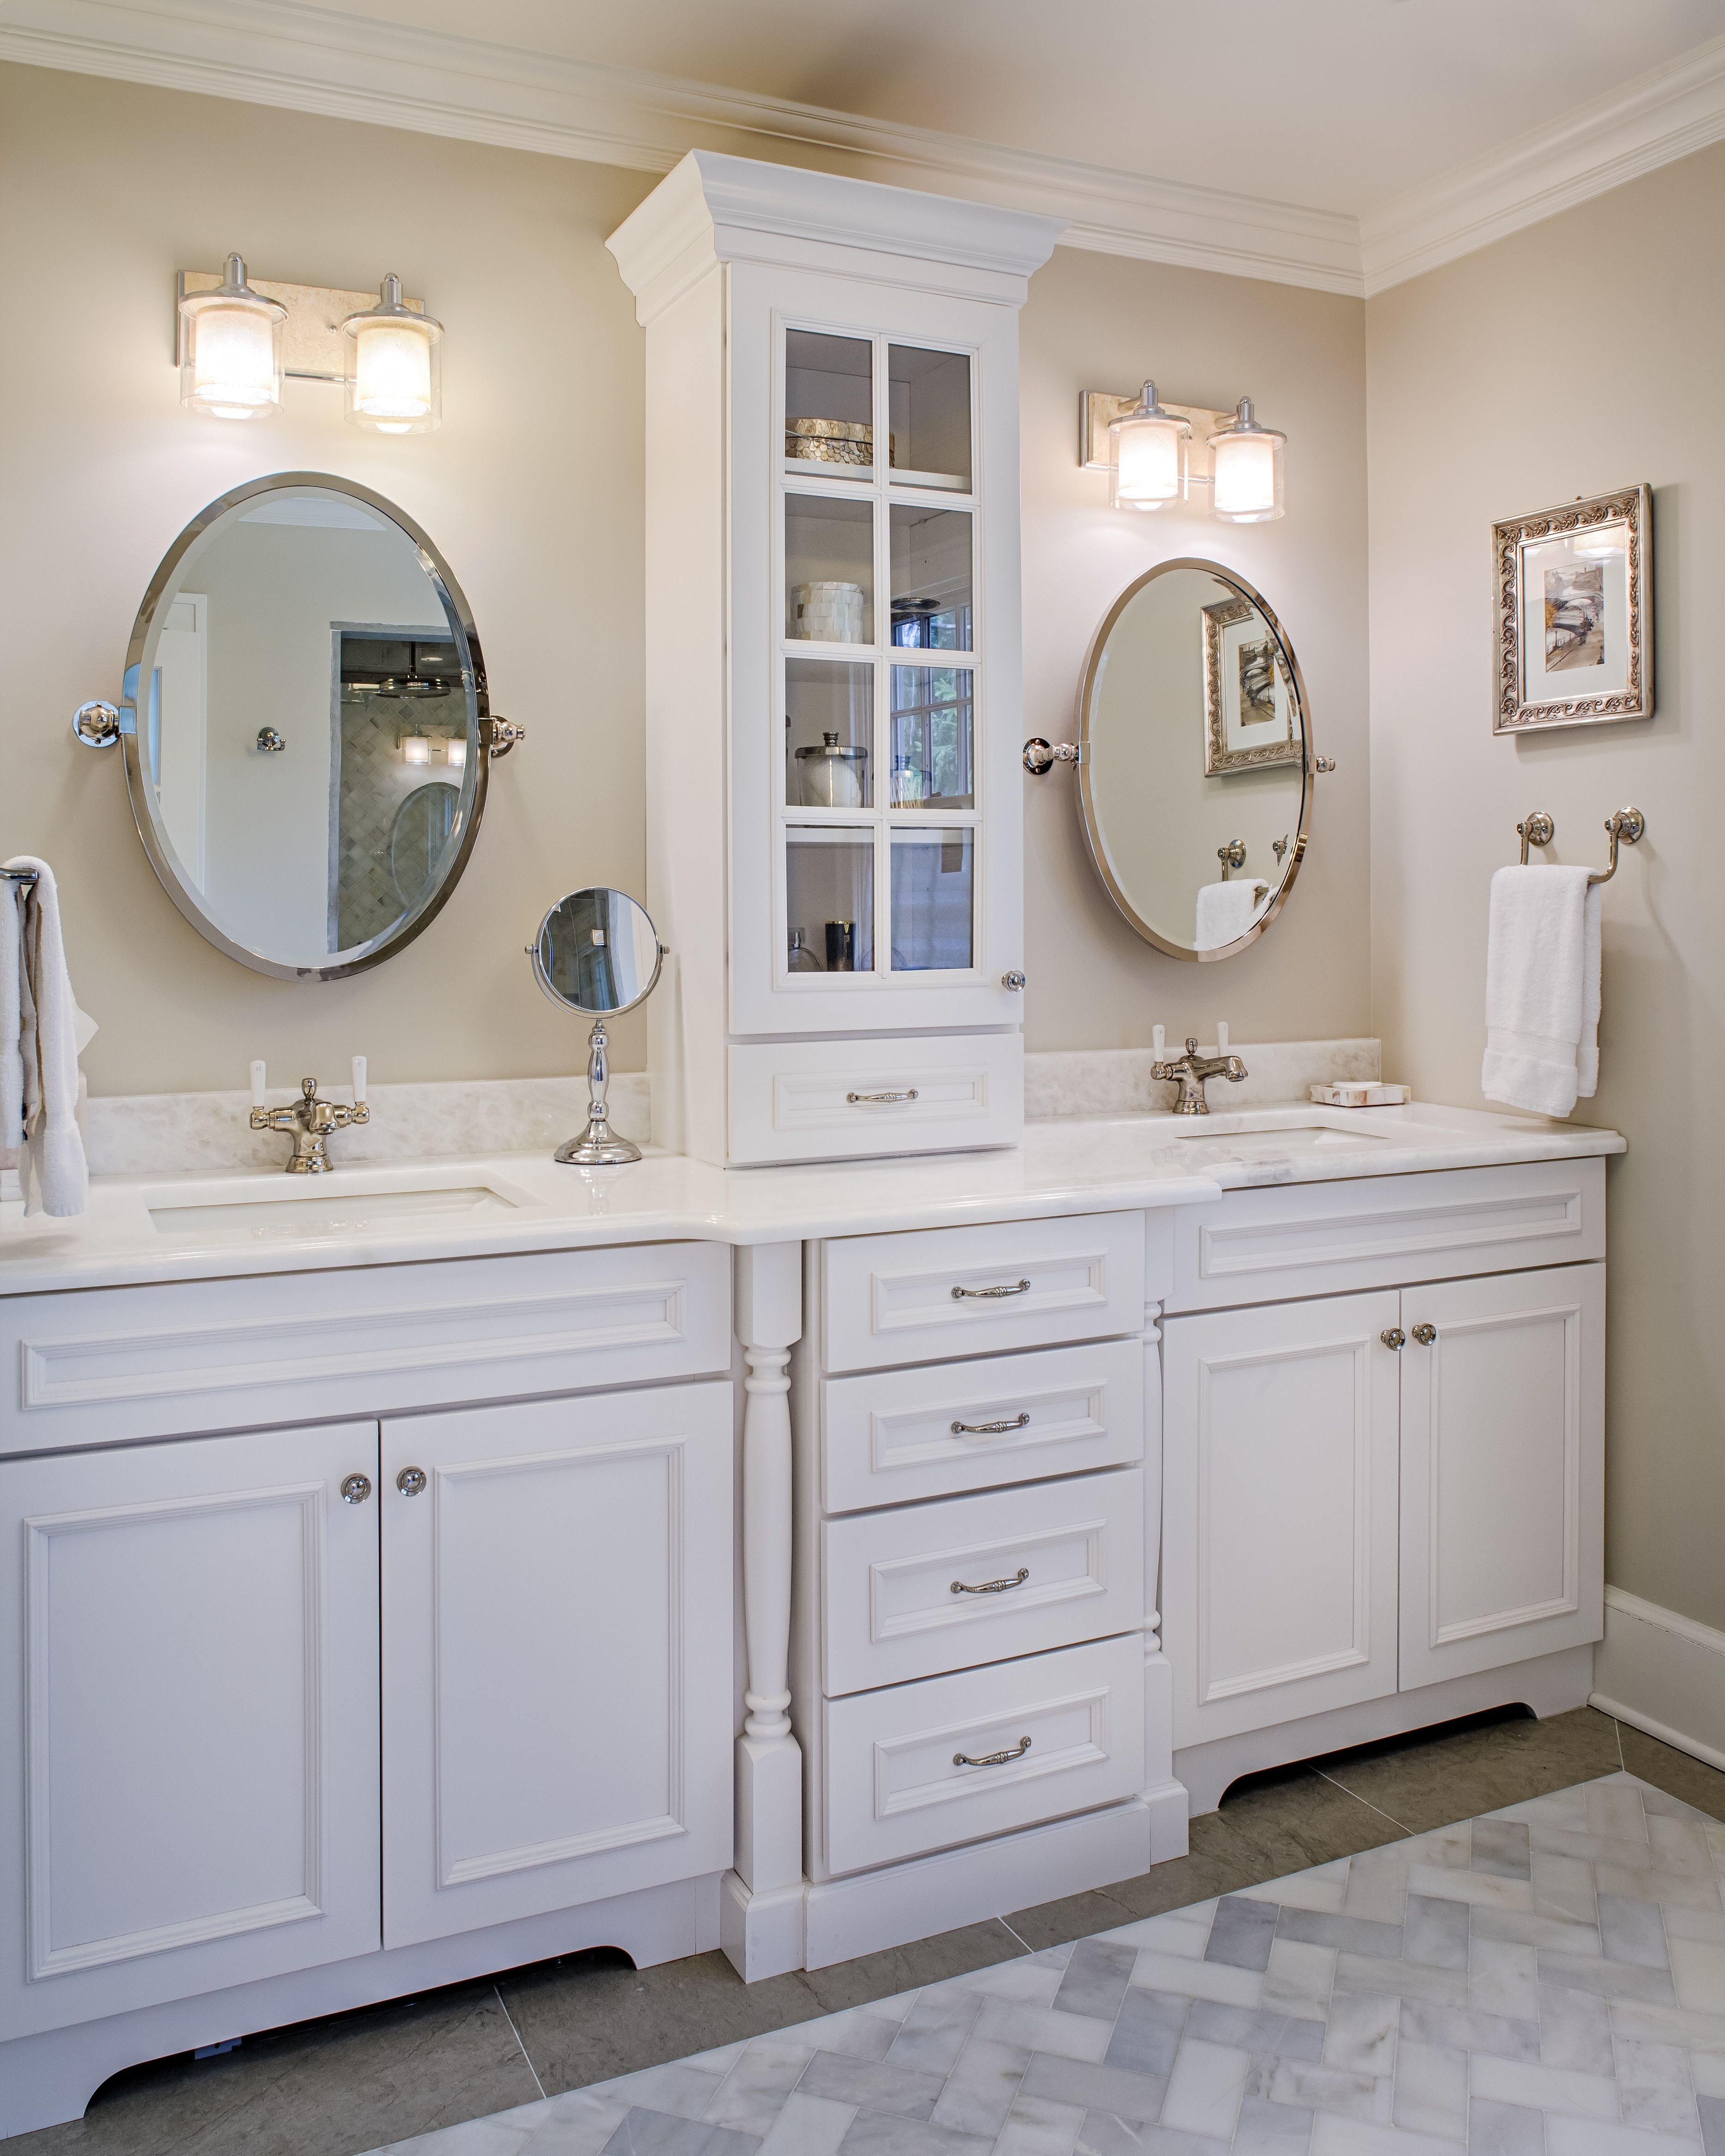 Master Bathroom Renovation With Tower And Double Vanity Angie